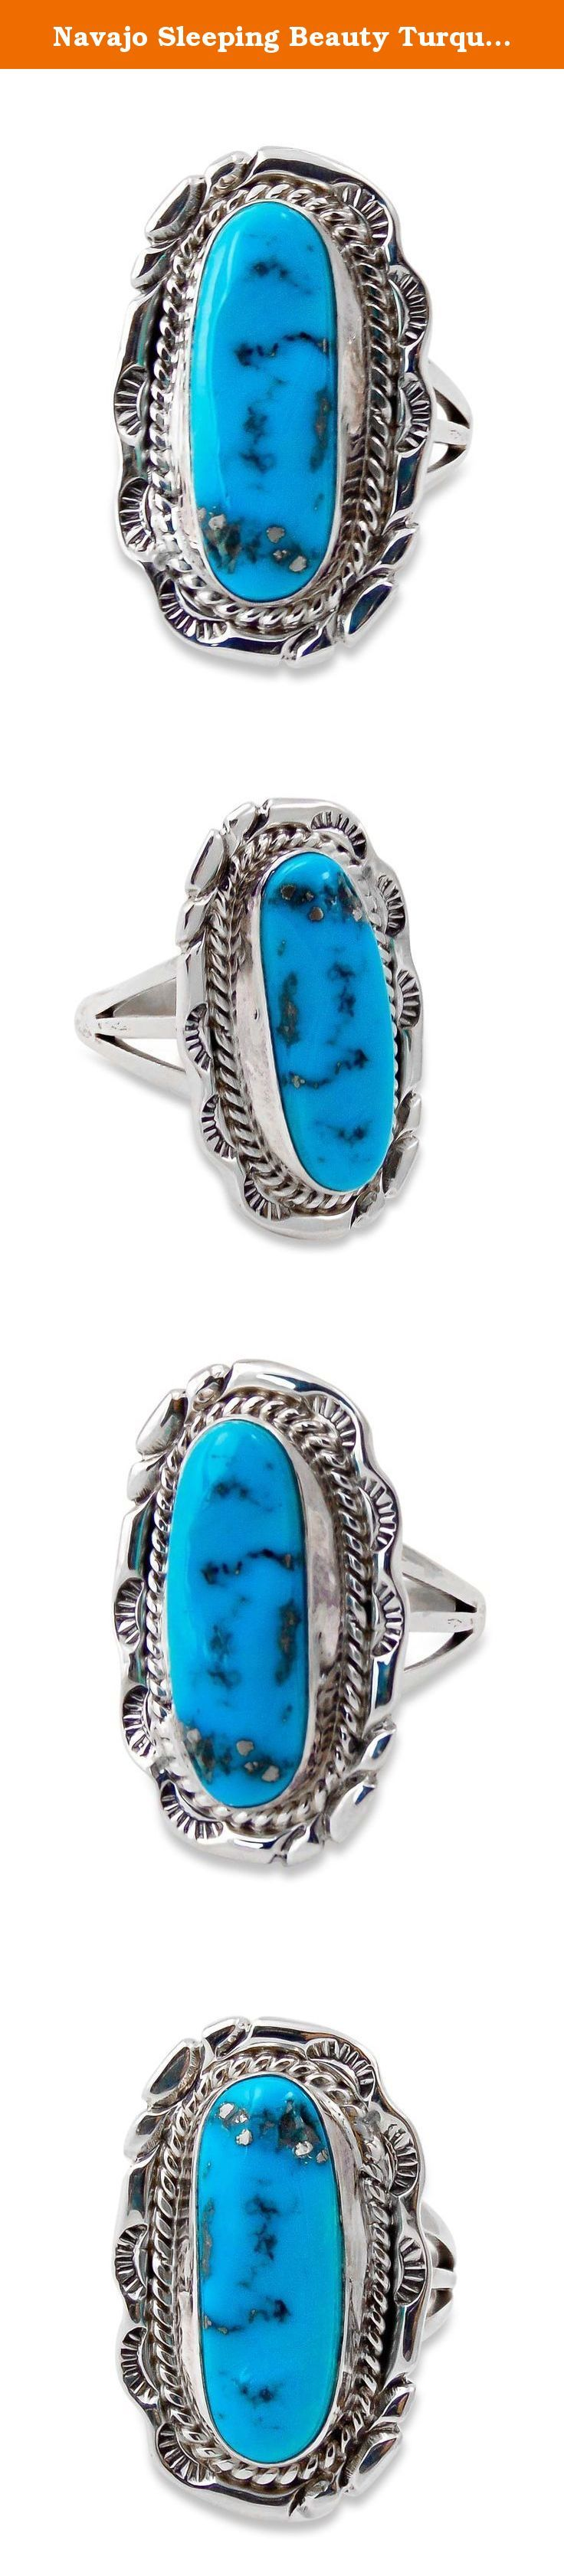 Navajo Sleeping Beauty Turquoise Ring Size 7.5. This ...